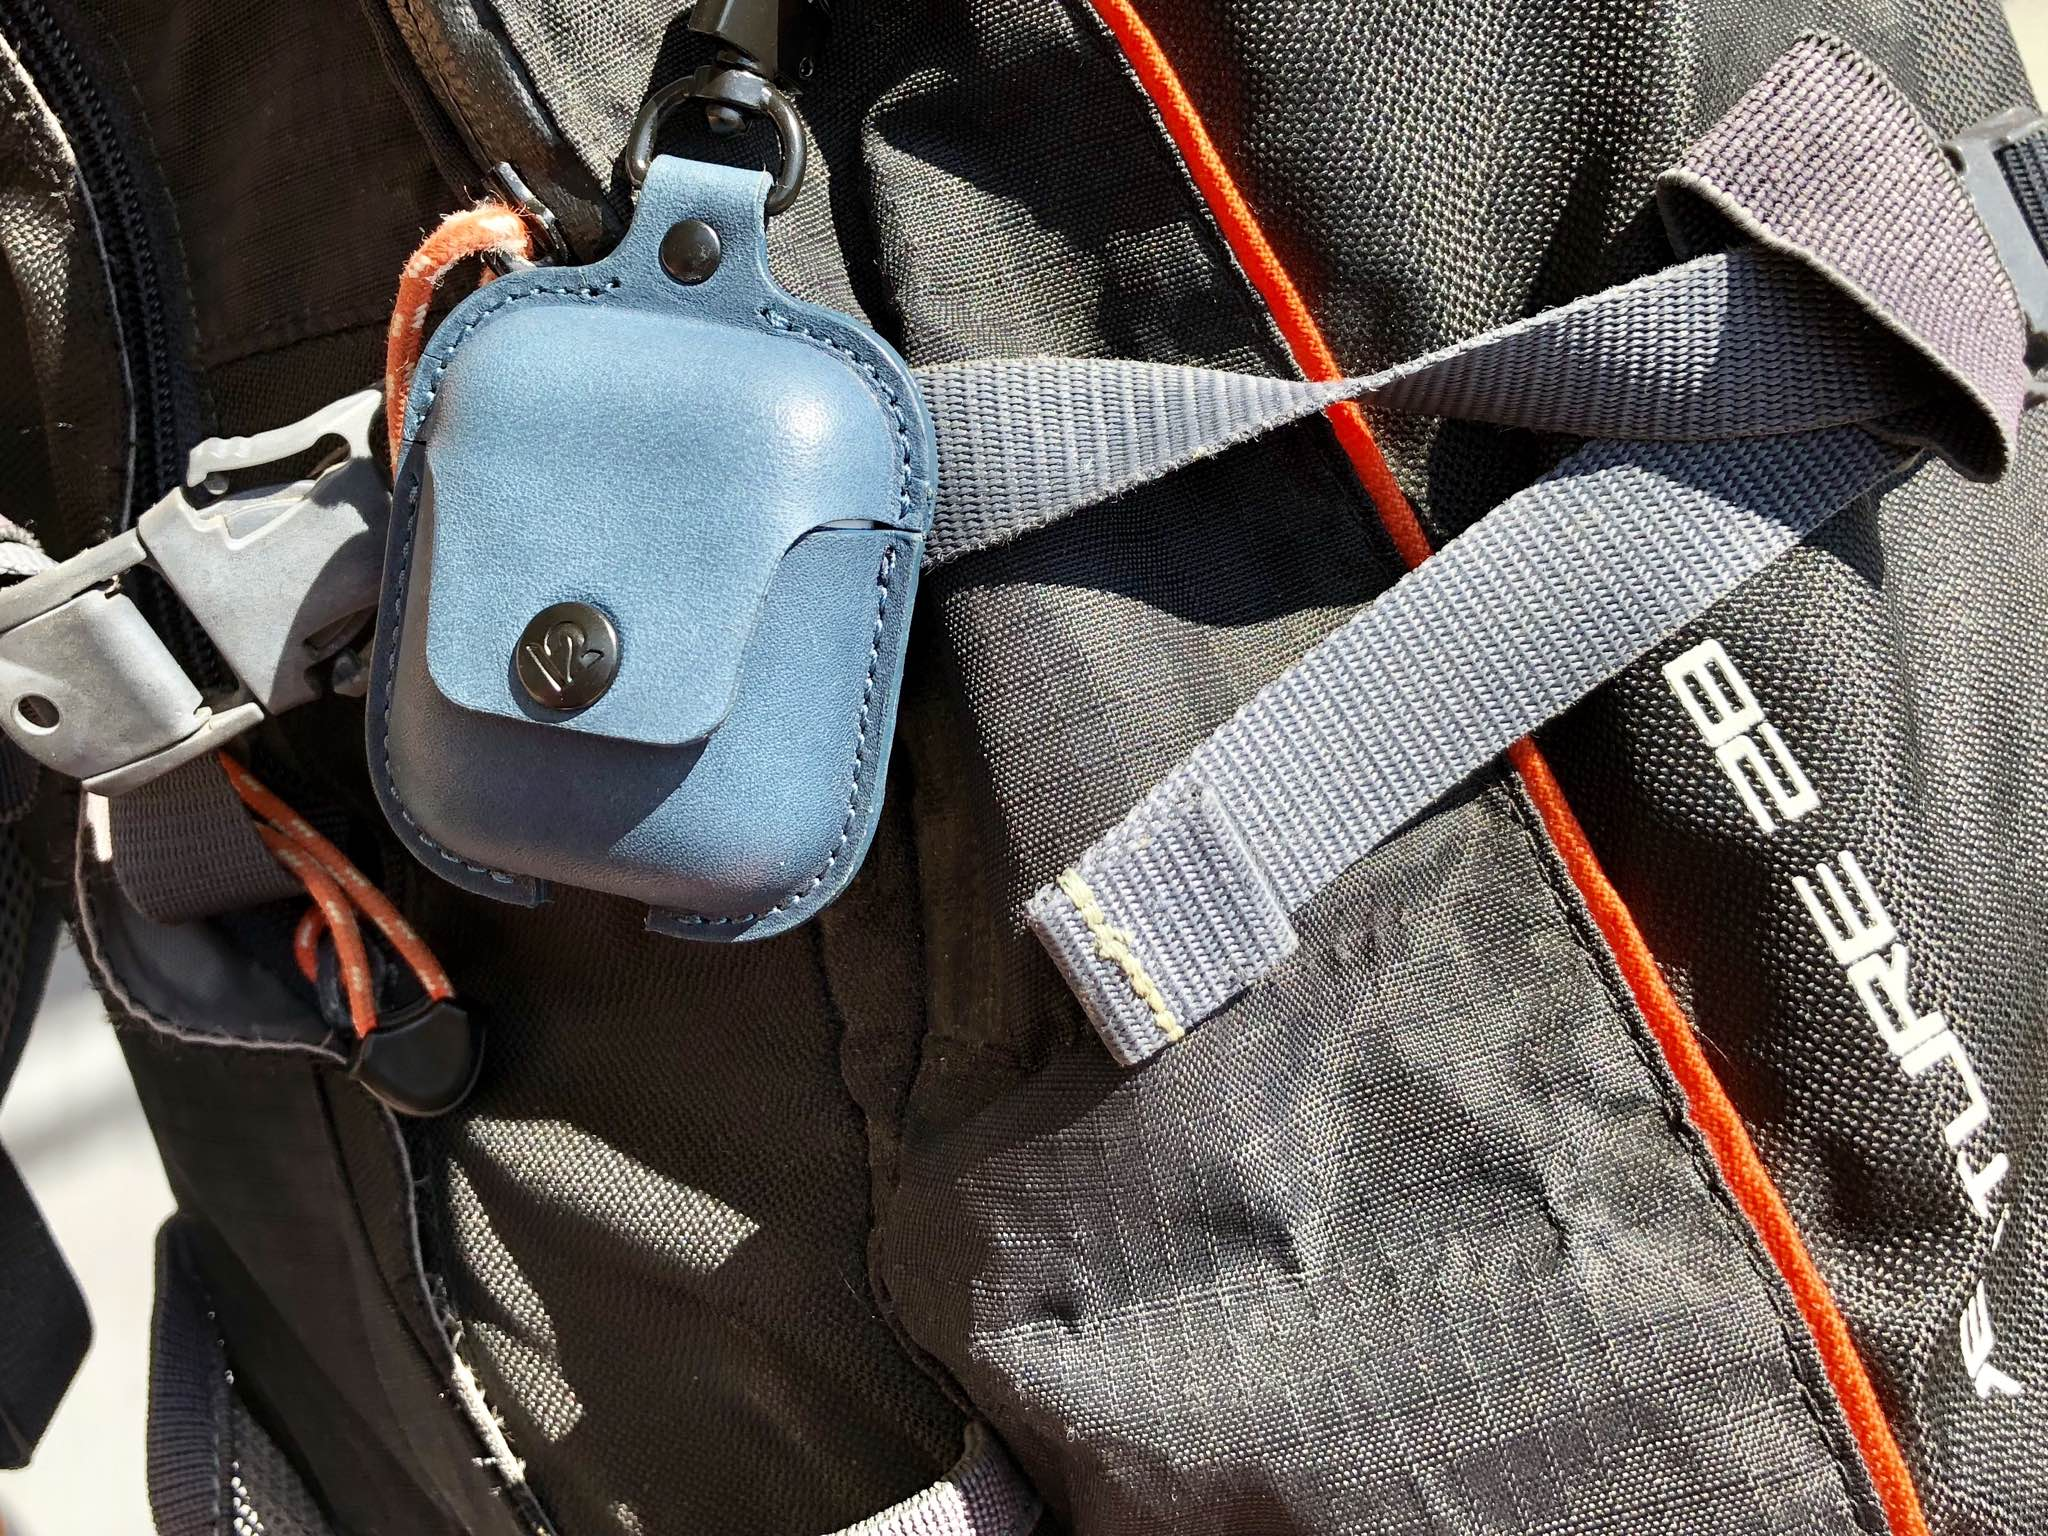 AirSnap hanging on a backpack